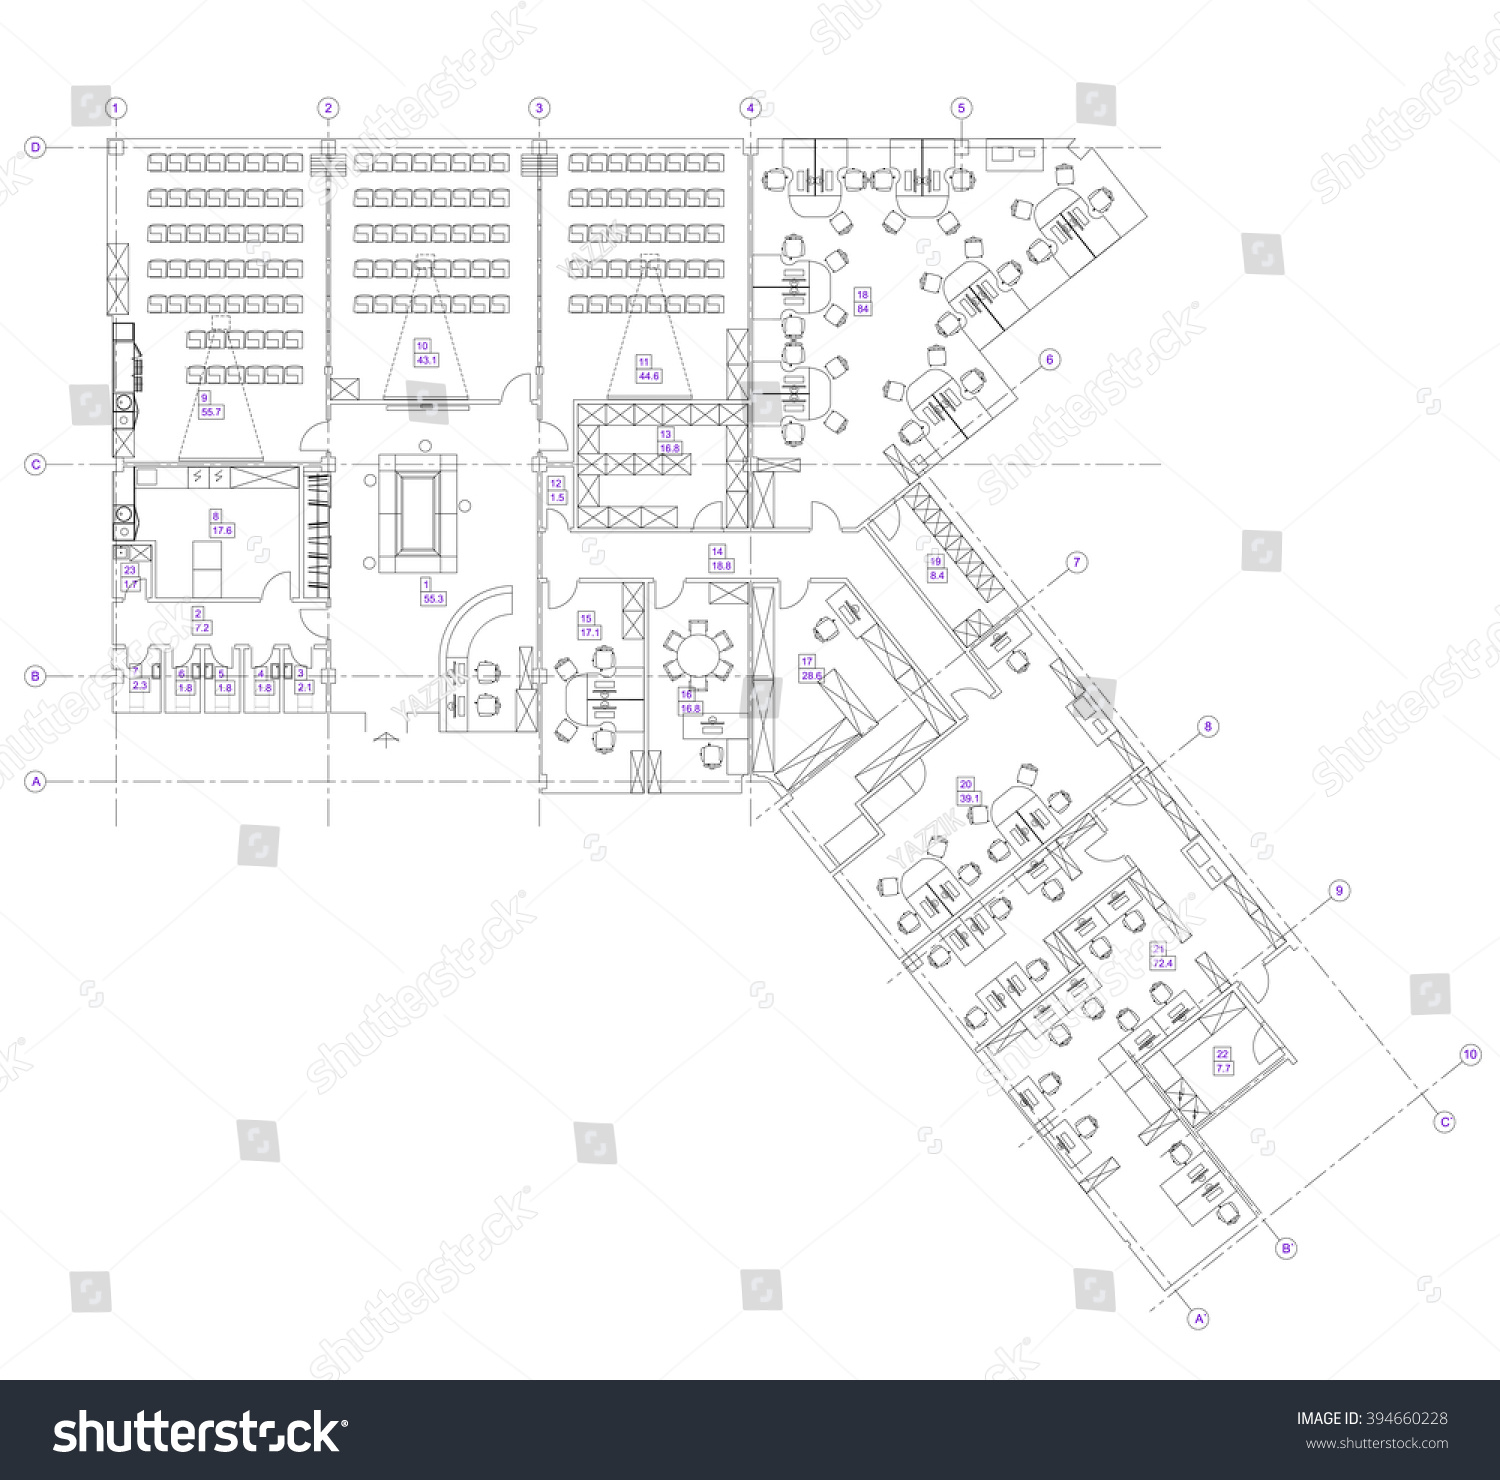 office furniture plans. Standard Office Furniture Symbols Set Used In Architecture Plans, Planning Icon Set, Graphic Plans